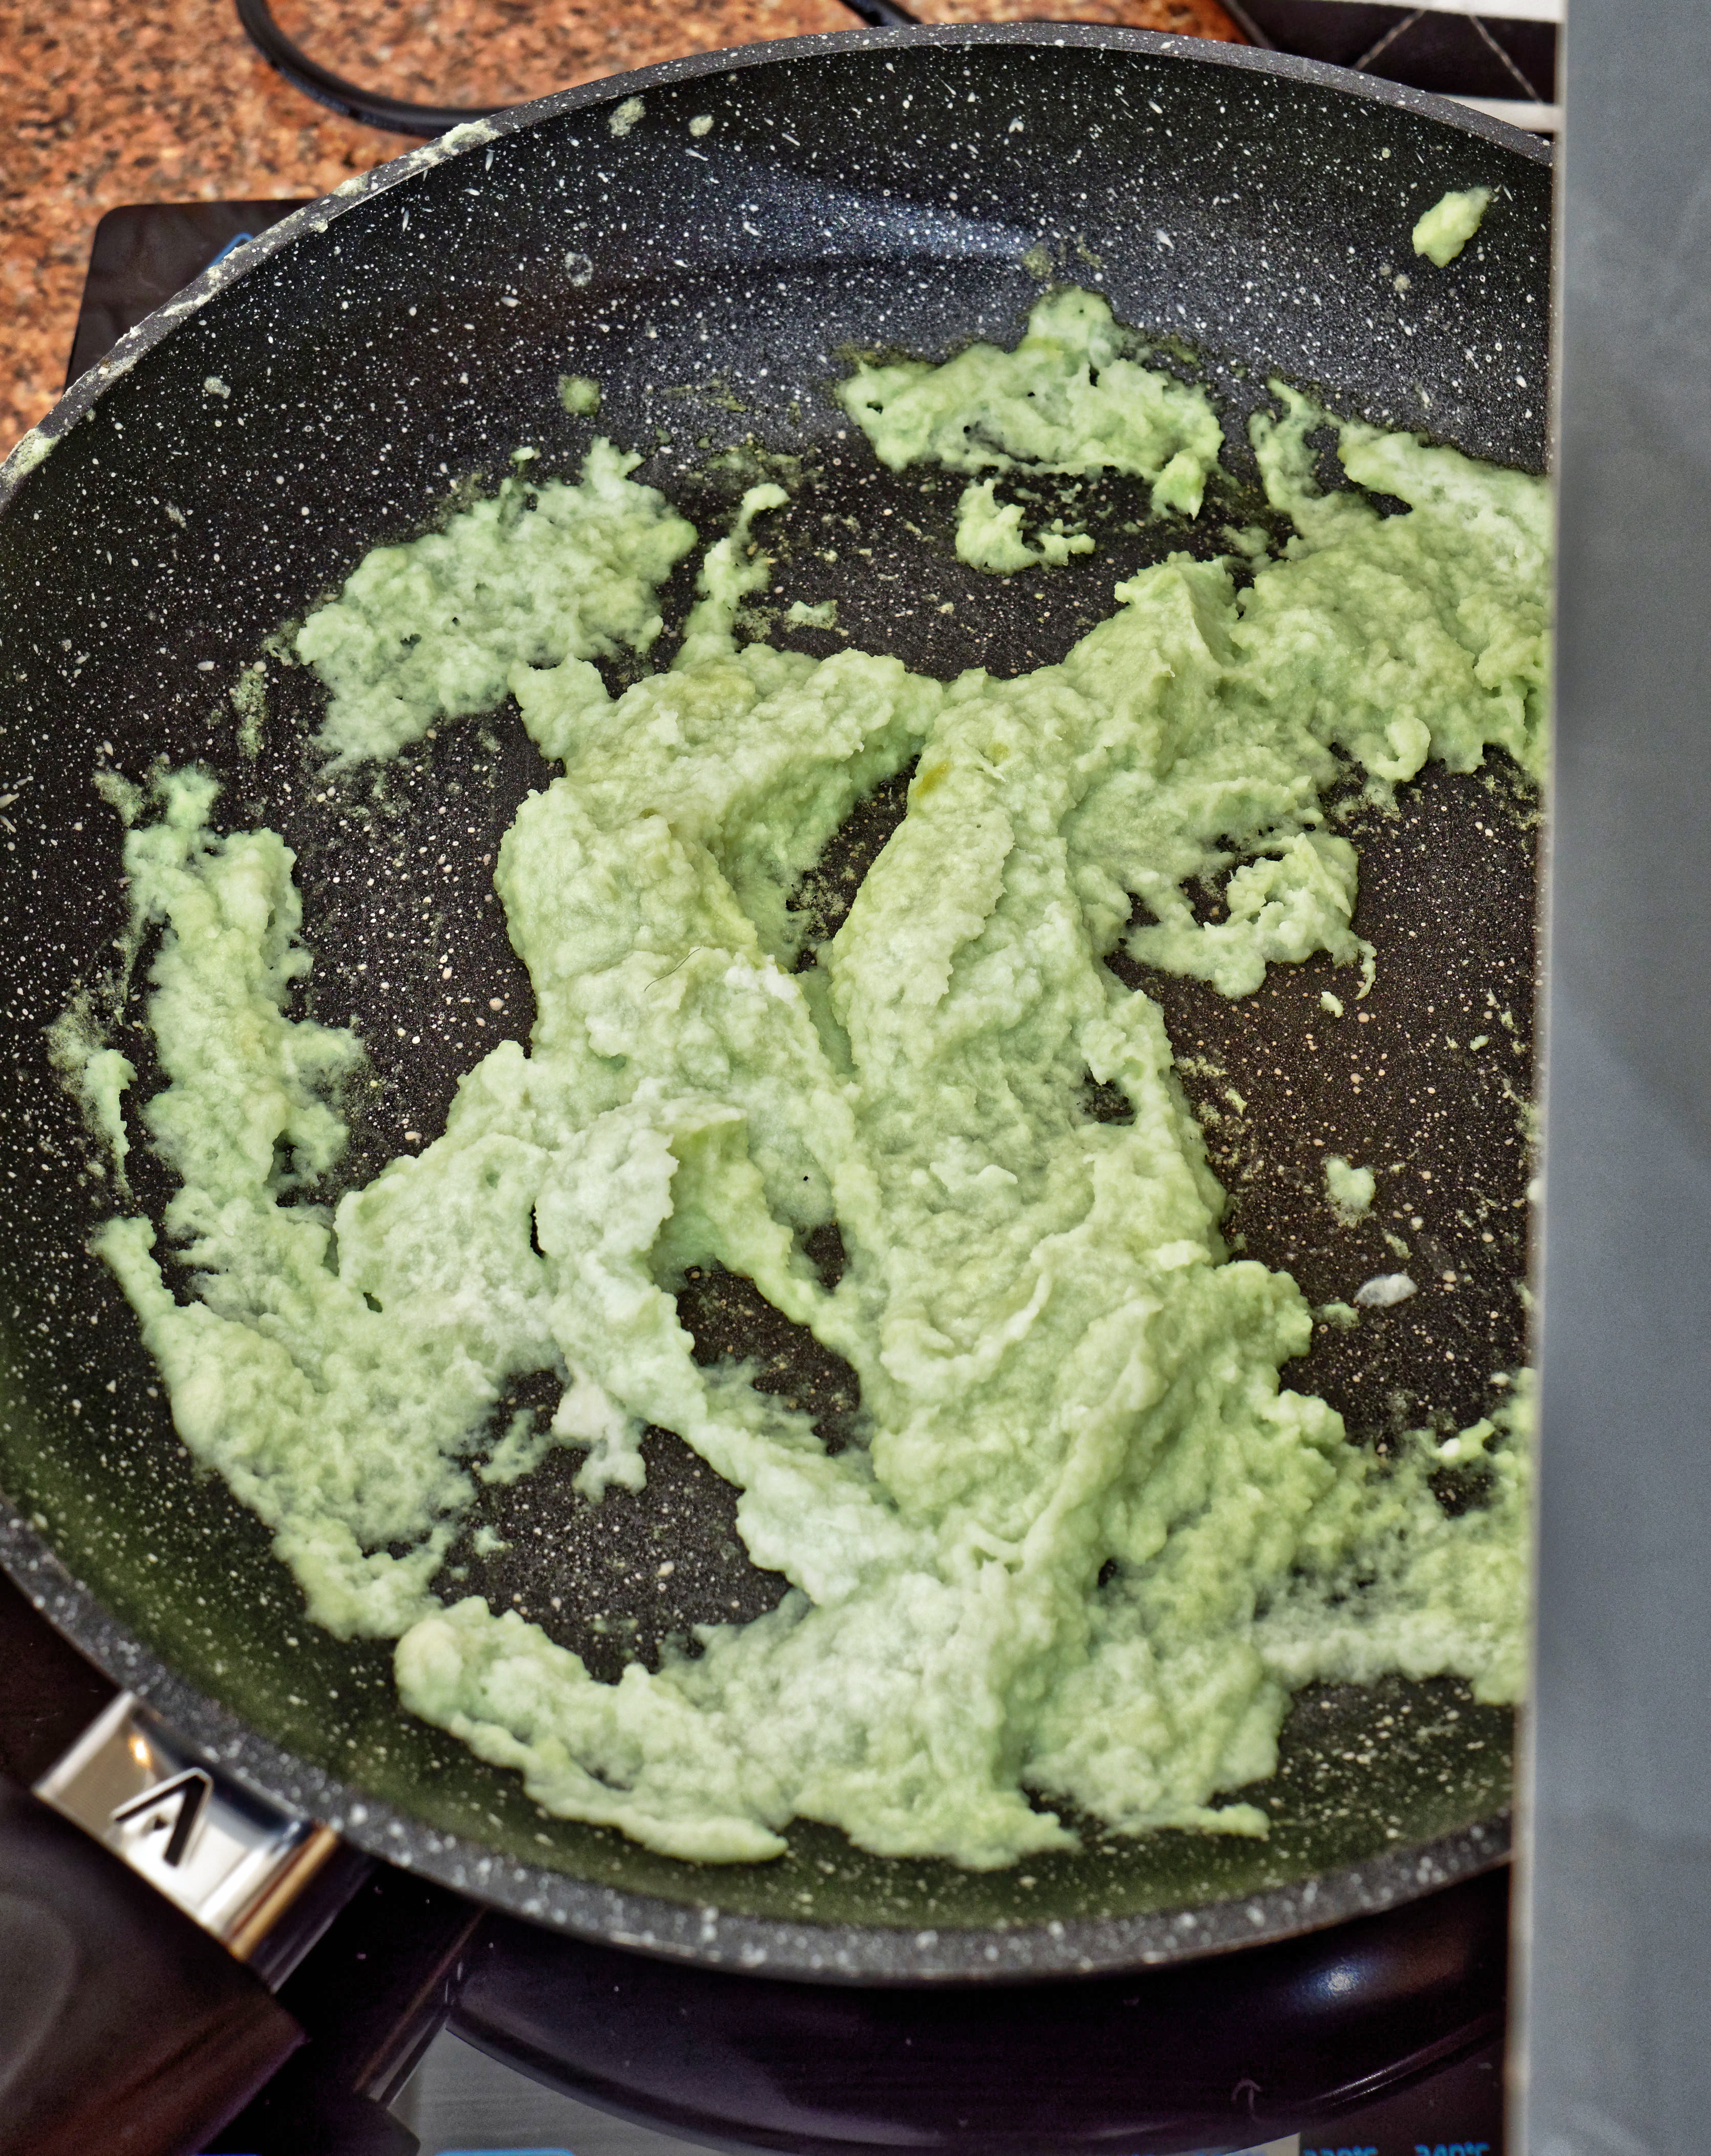 This should be Green-onions-2.jpeg.  Is it missing?